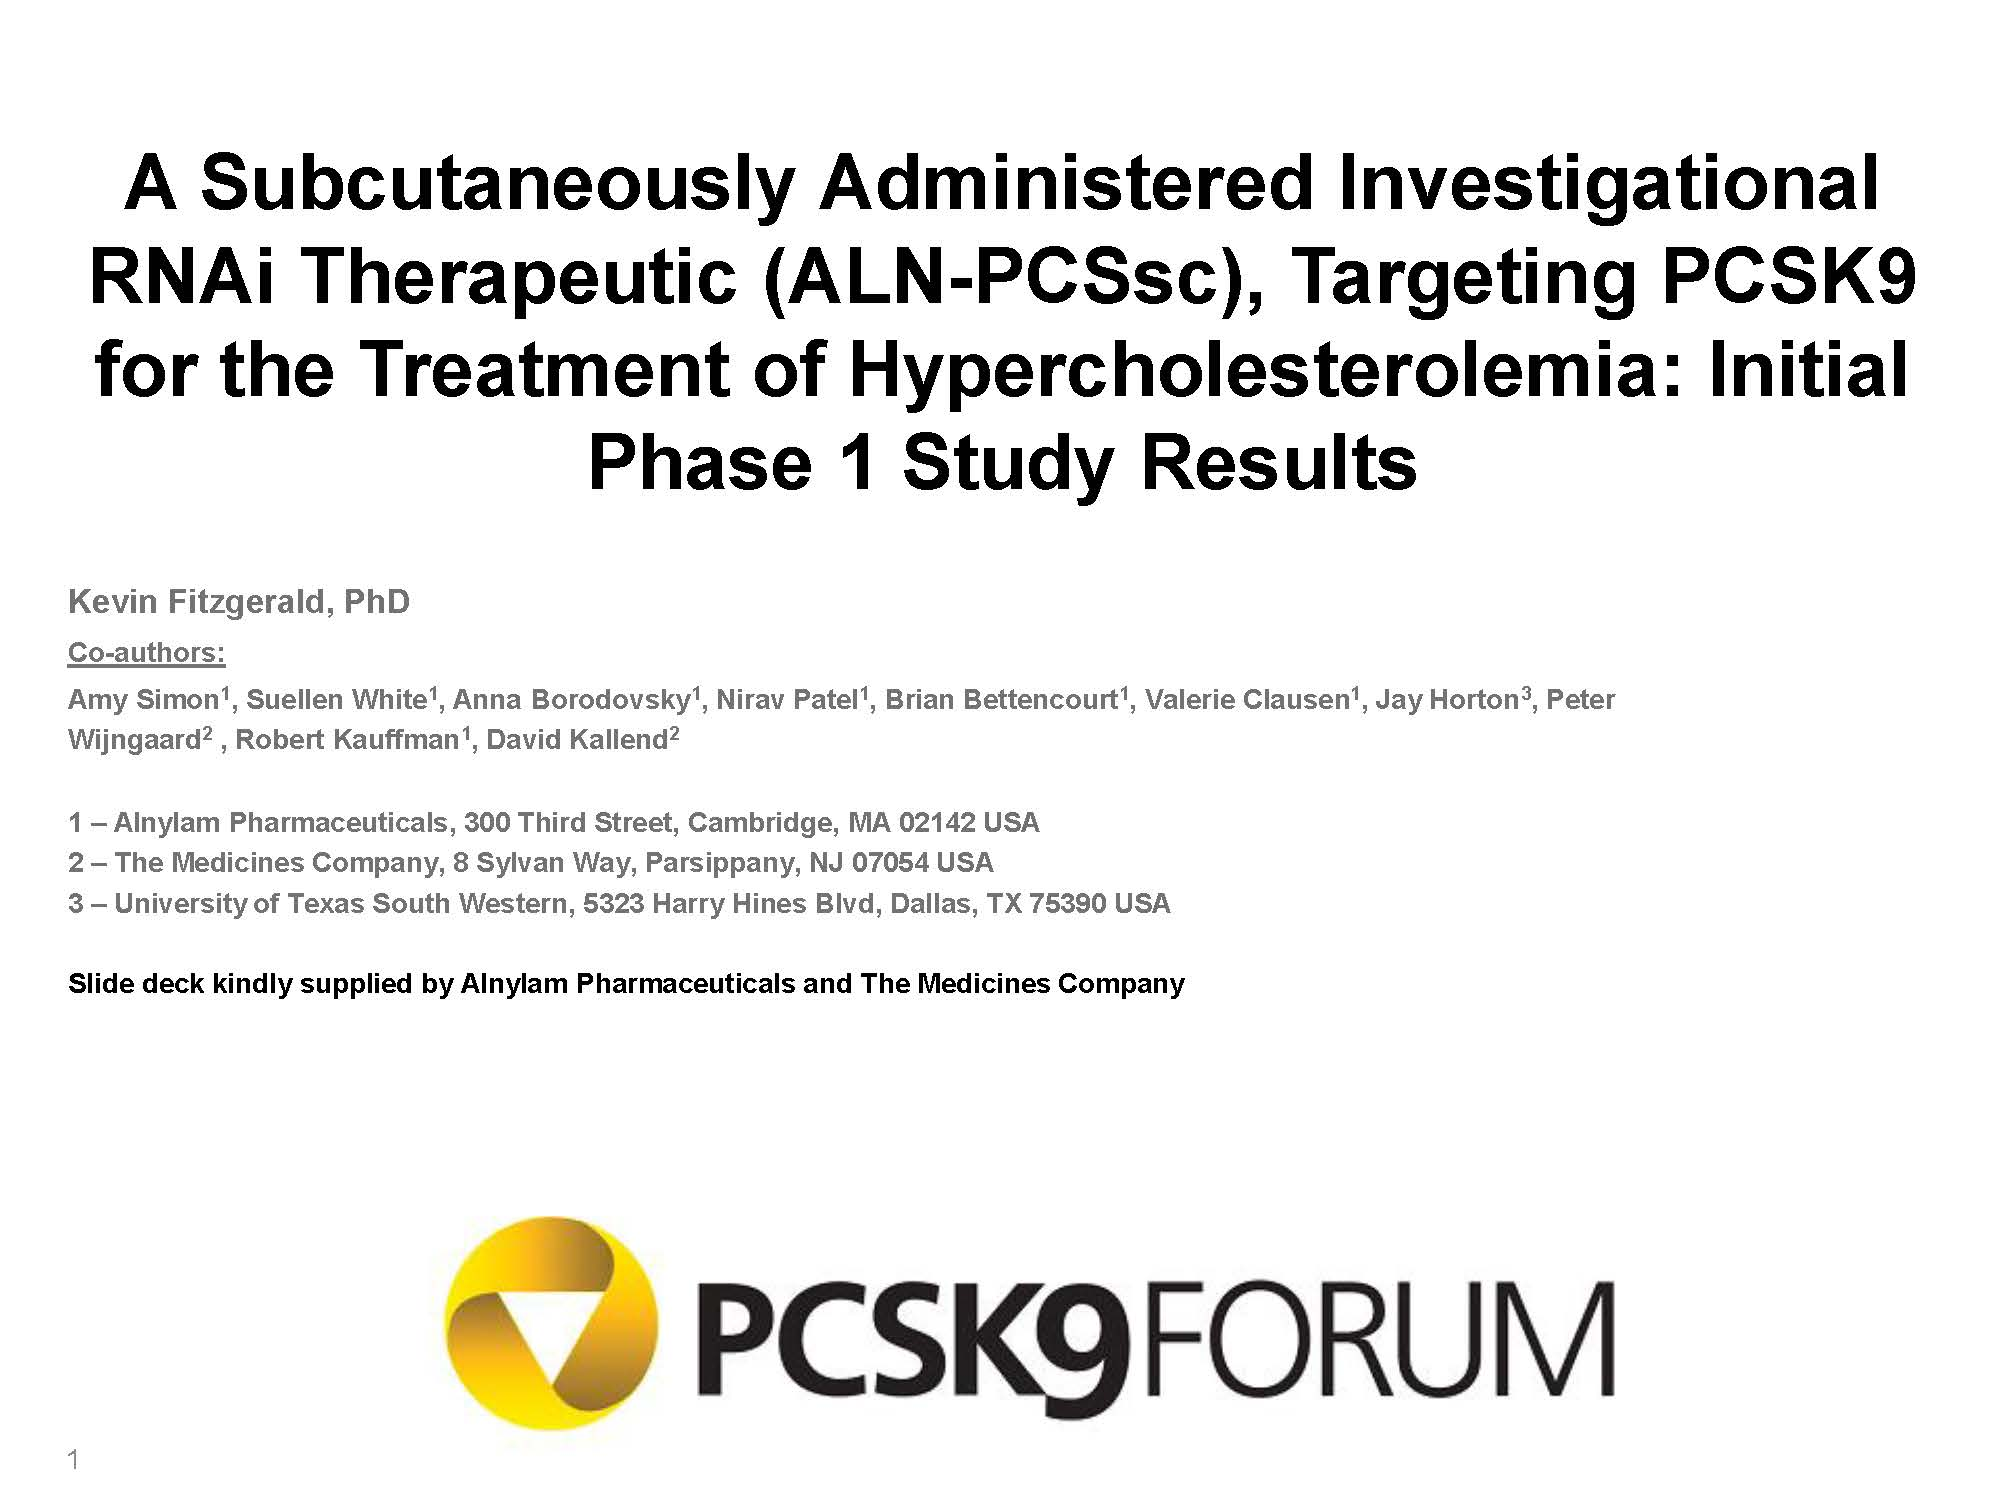 ALN-PCSsc: Initial Phase 1 Study Results